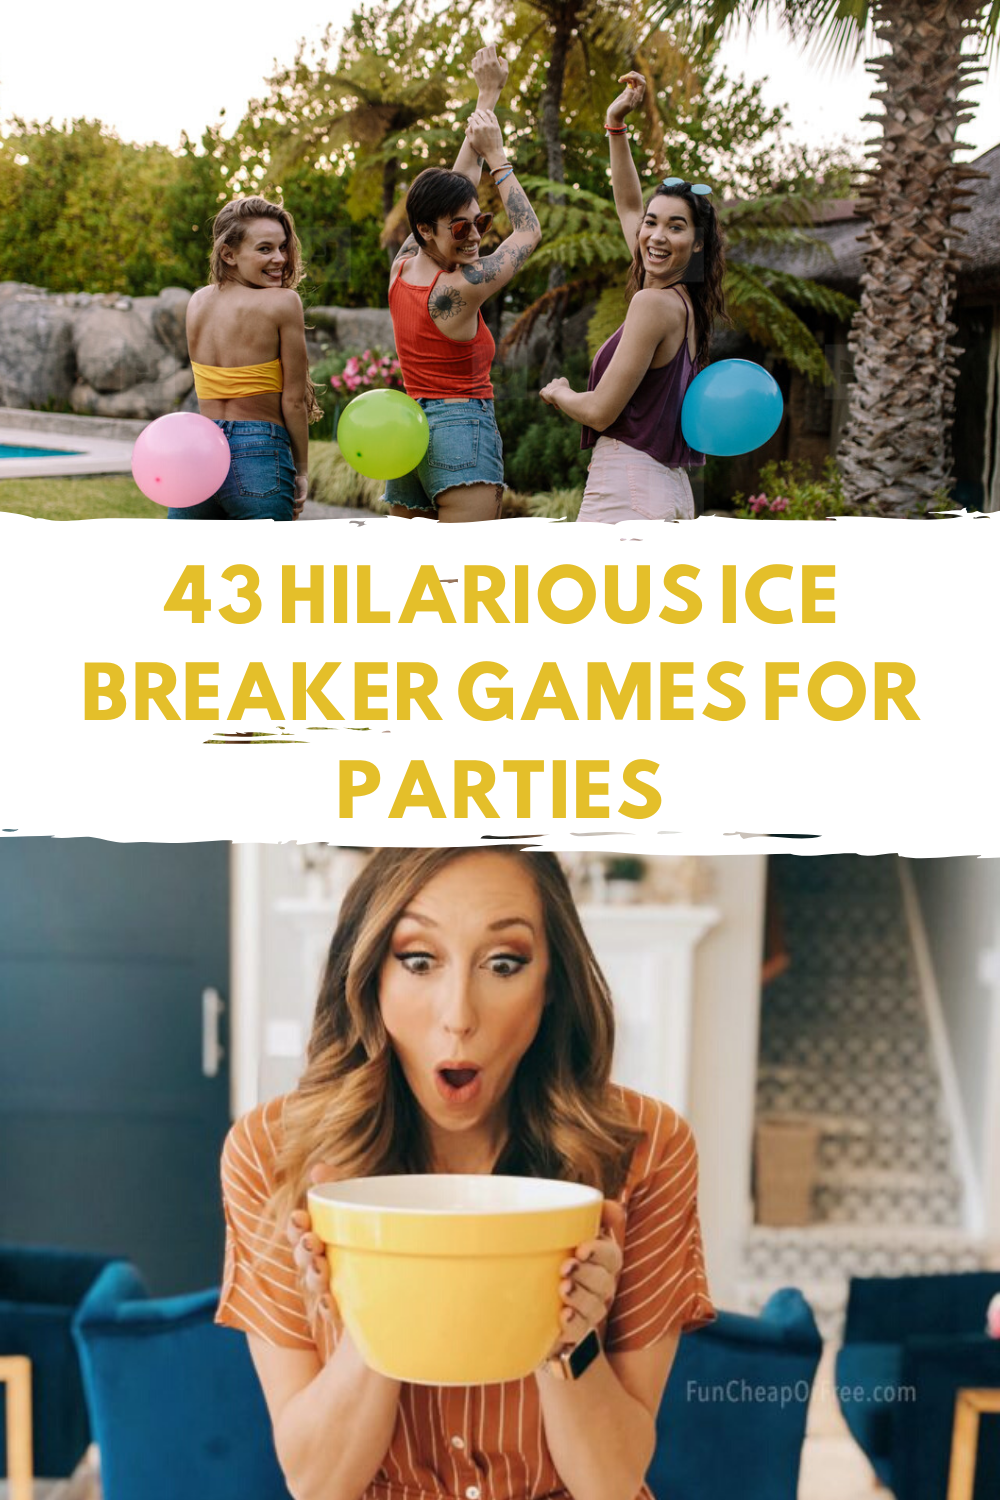 Ice Breaker Games for Parties